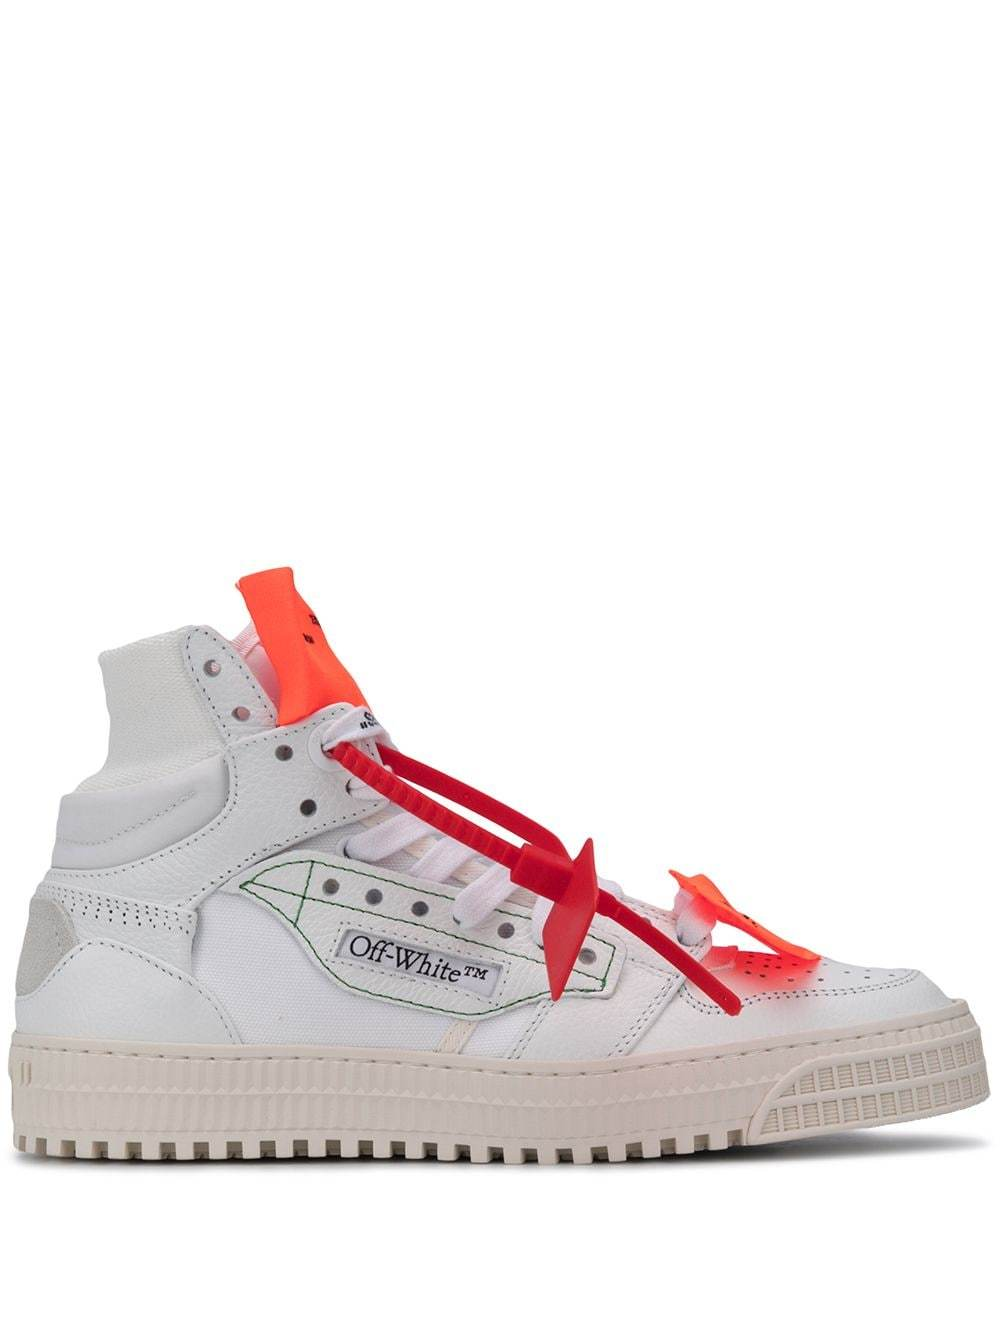 OFF-WHITE 3.0 court sneakers white